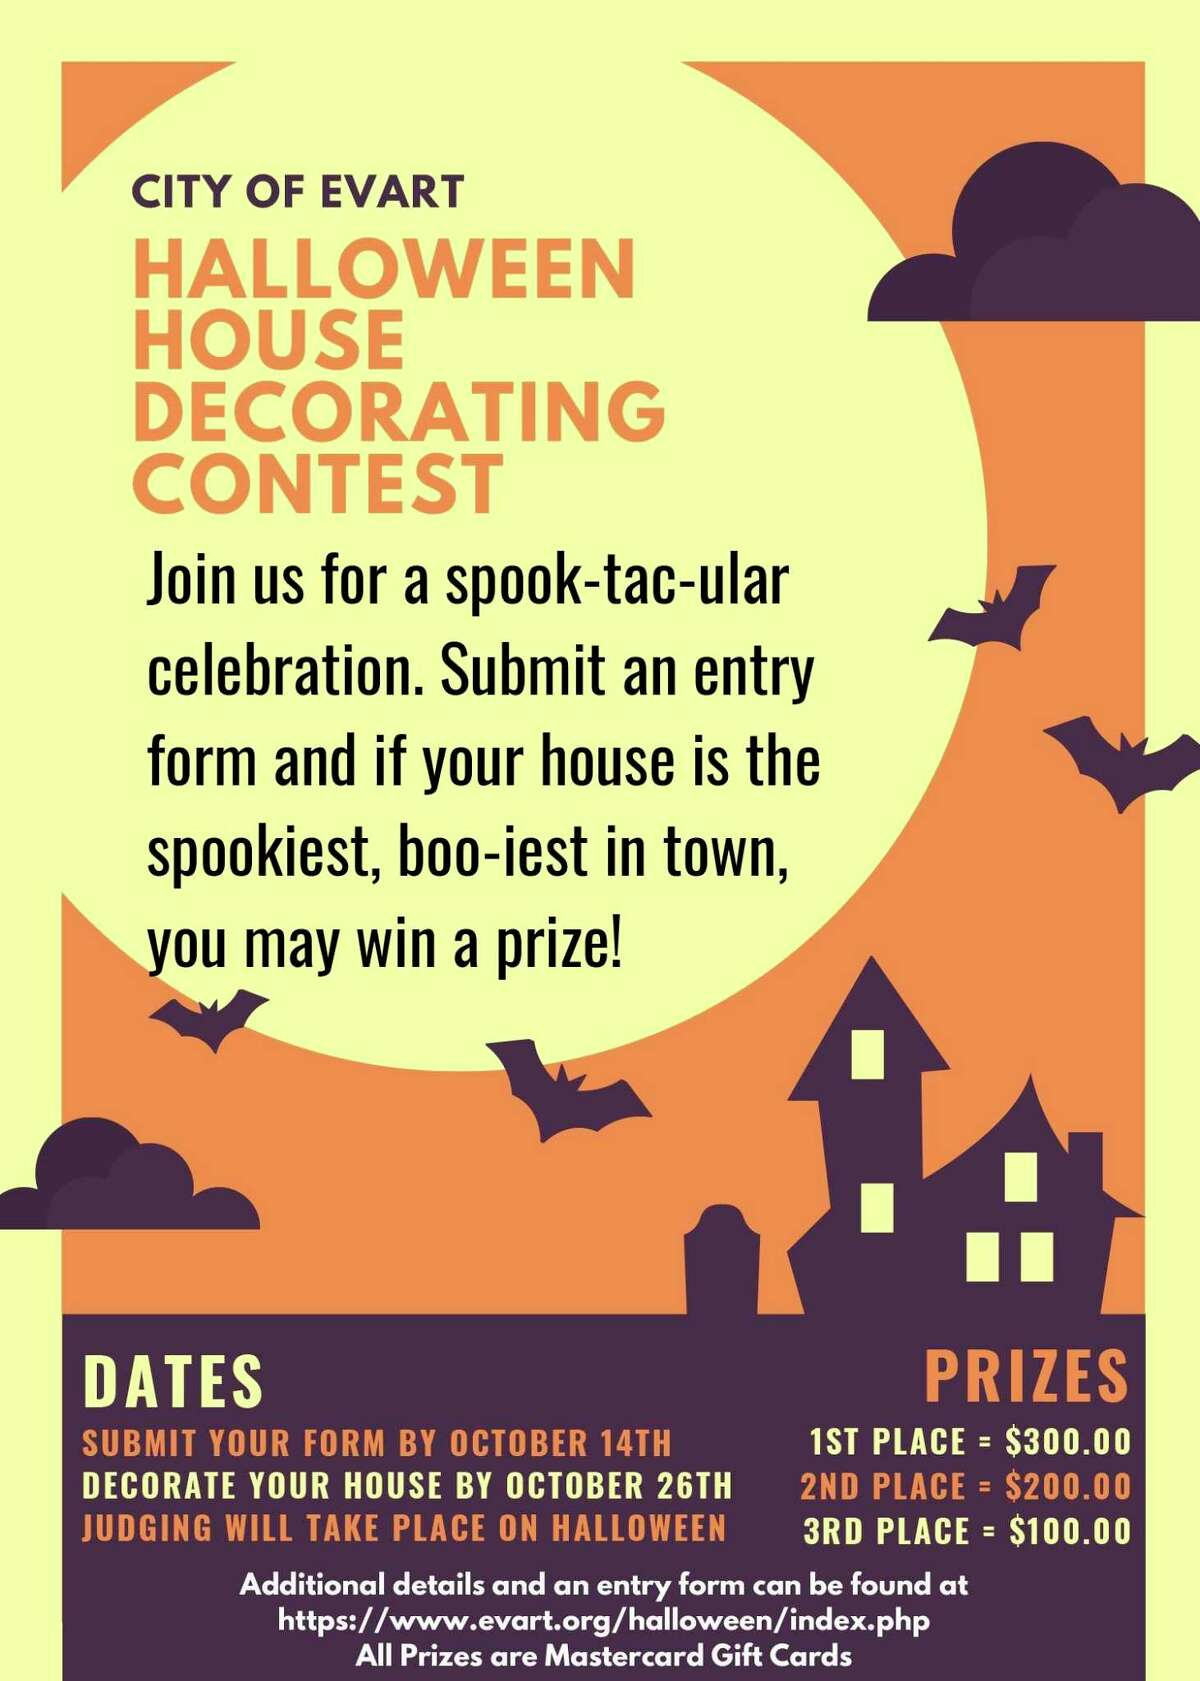 Evart residents are invited to participate in a Halloween house decorating contest for a chance to win prizes. For more information visit evart.org. (Submitted photo)